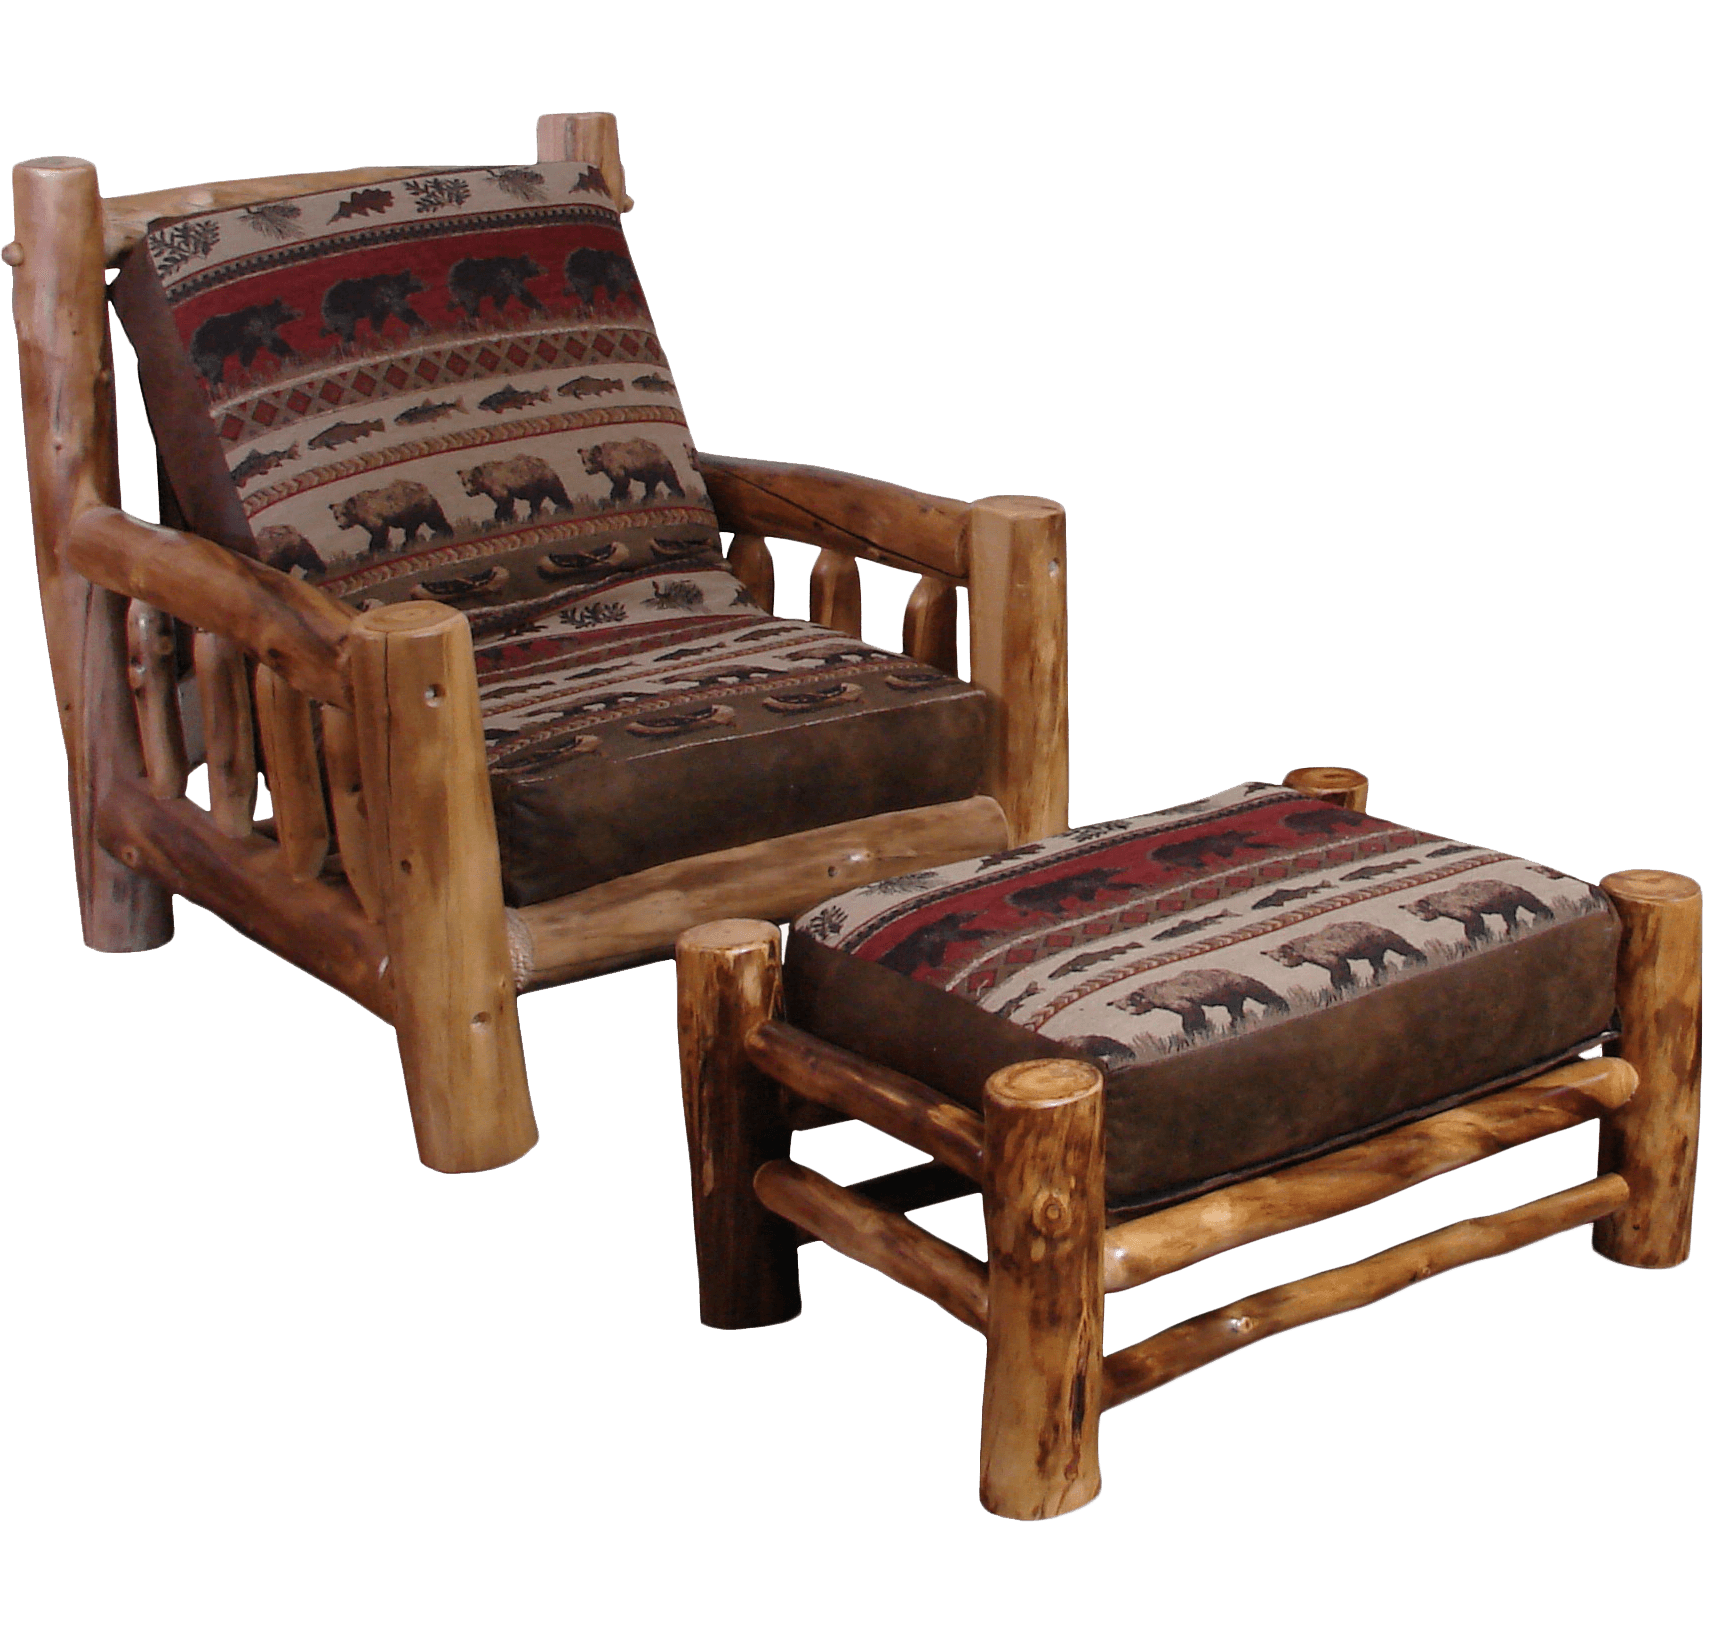 Aspen Log Frame Ottoman | Rustic Log Furniture of Utah